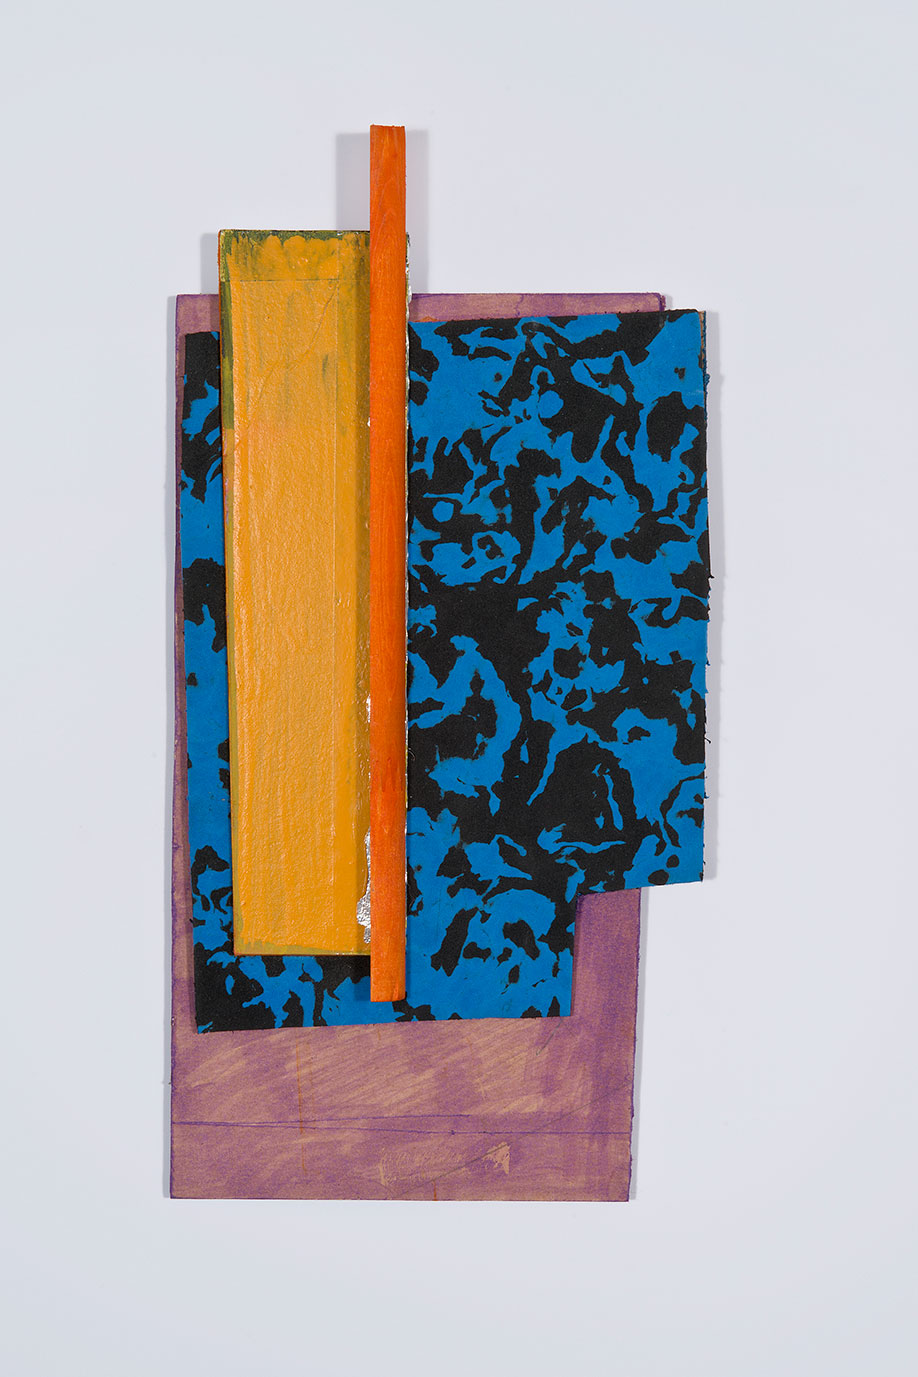 <b>Title: </b>Untitled<br /><b>Year: </b>2013<br /><b>Medium: </b>Ink, aluminium tape, enamel, foam, wood, and hardboard<br /><b>Size: </b>35 x 18 cm